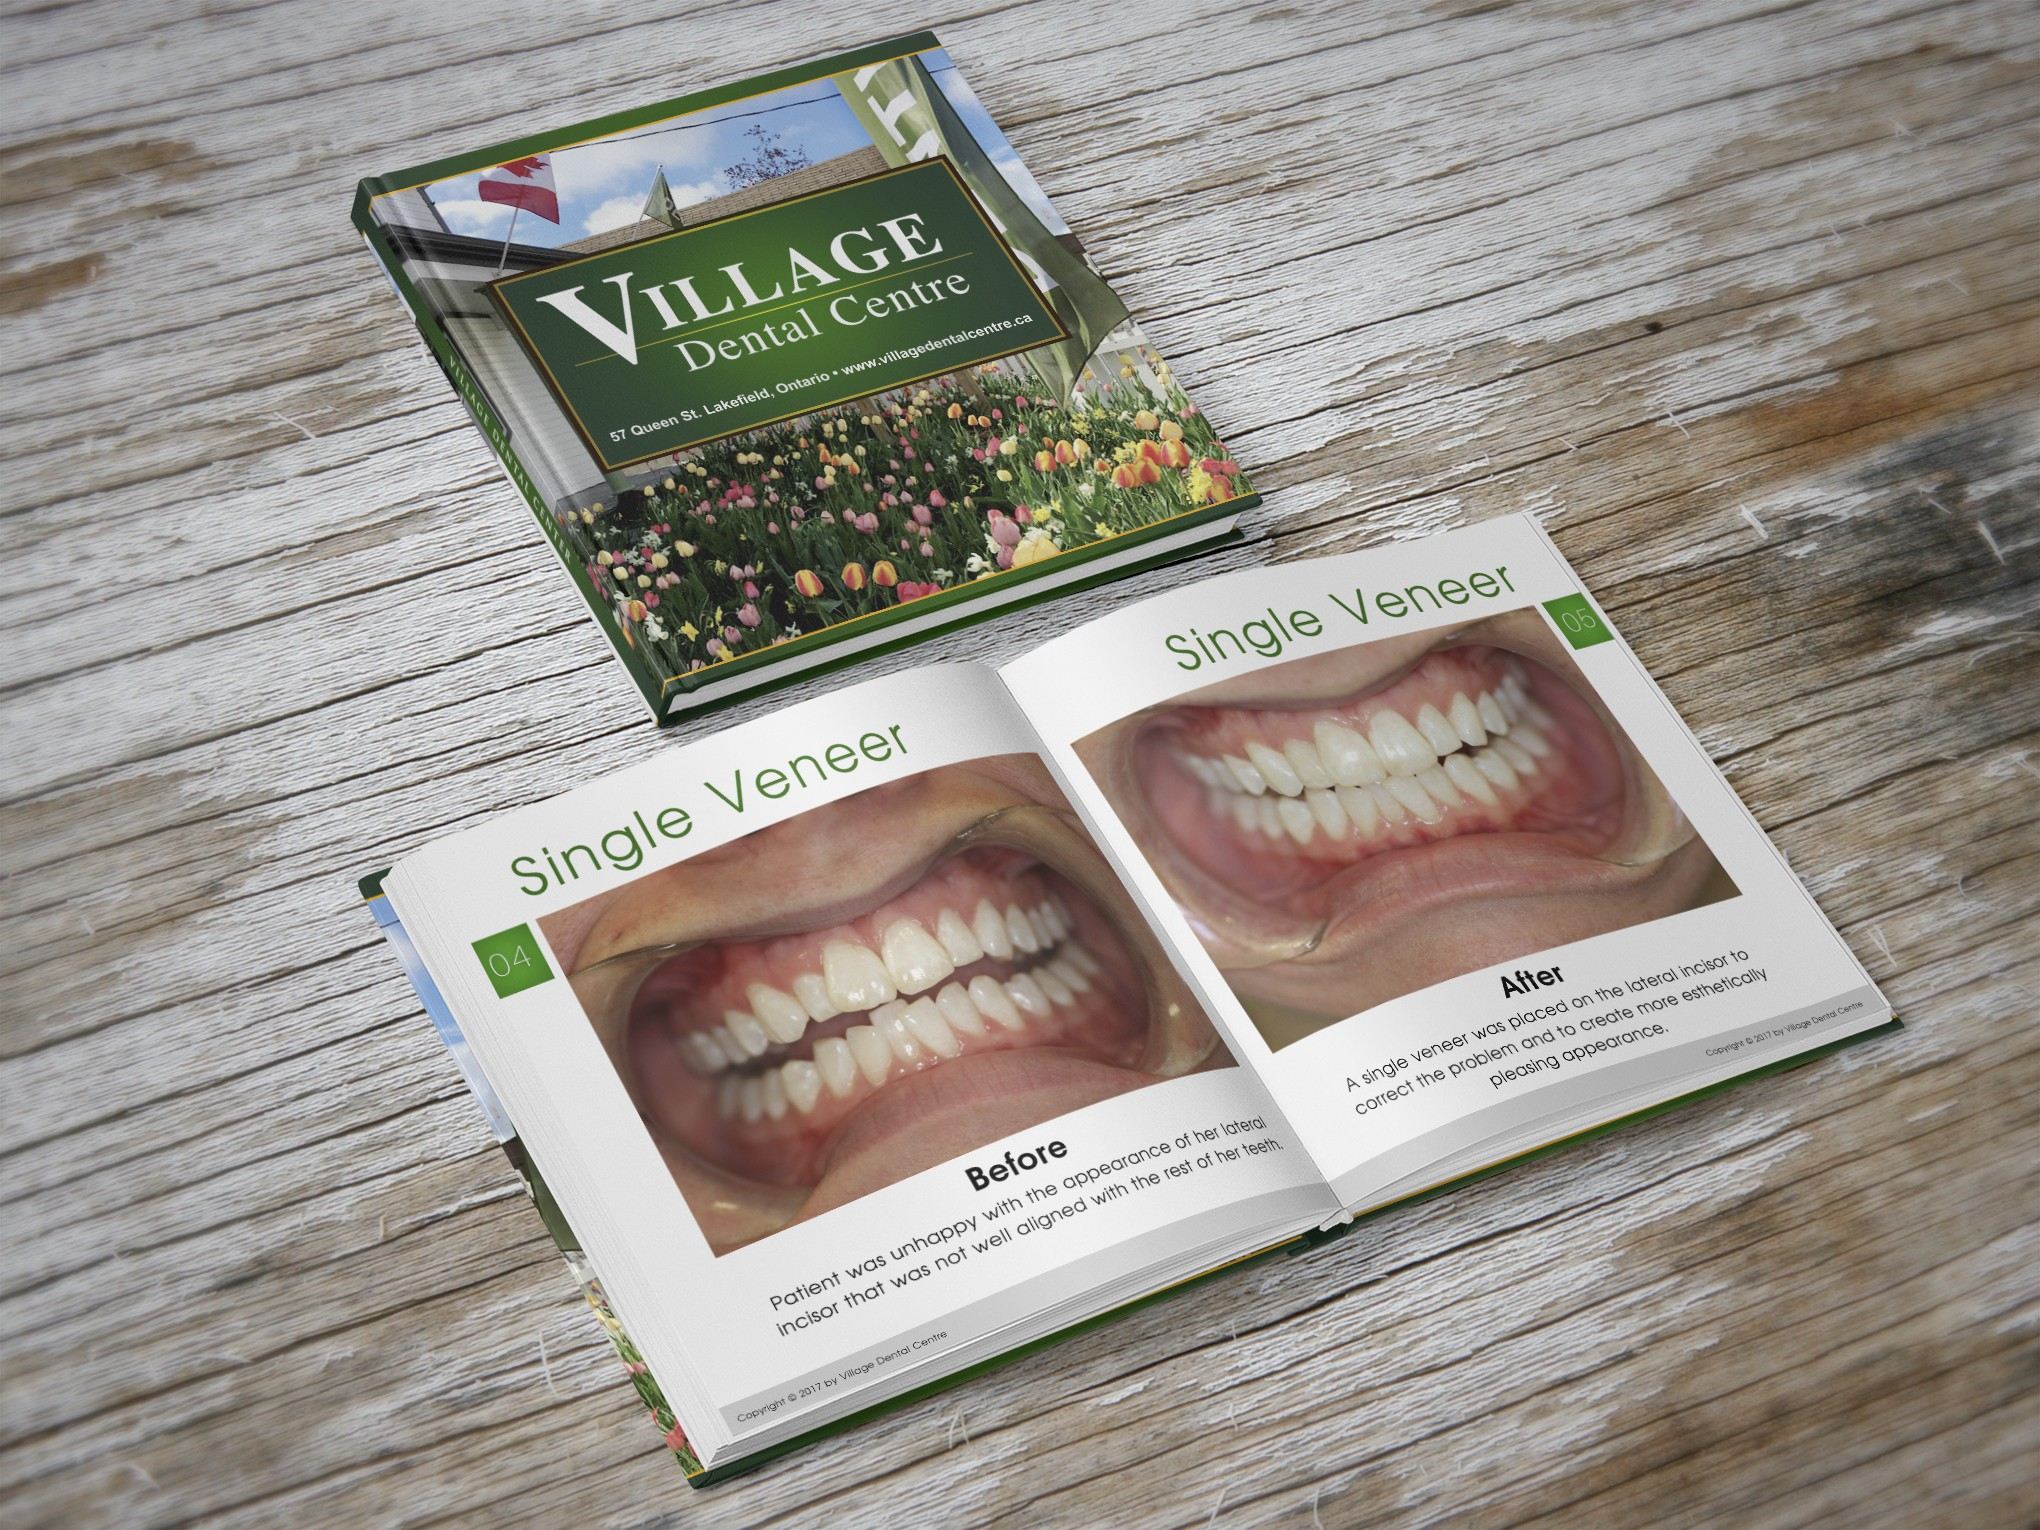 Dental office requires a patient education photo book